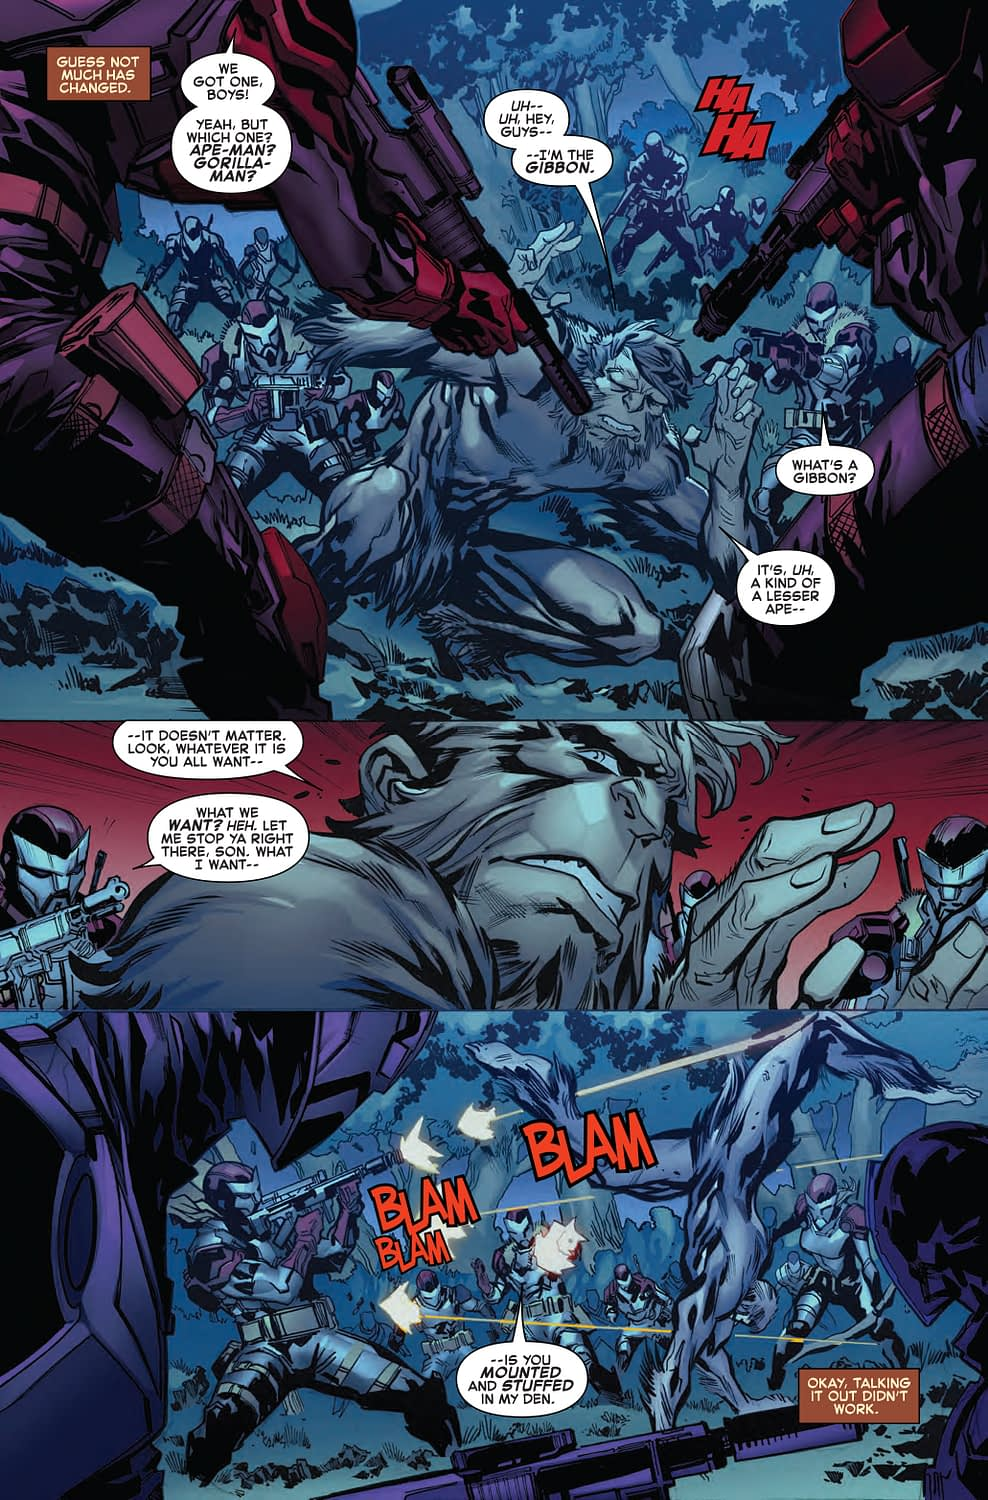 Sympathy for The Gibbon in Next Week's Amazing Spider-Man 18.HU